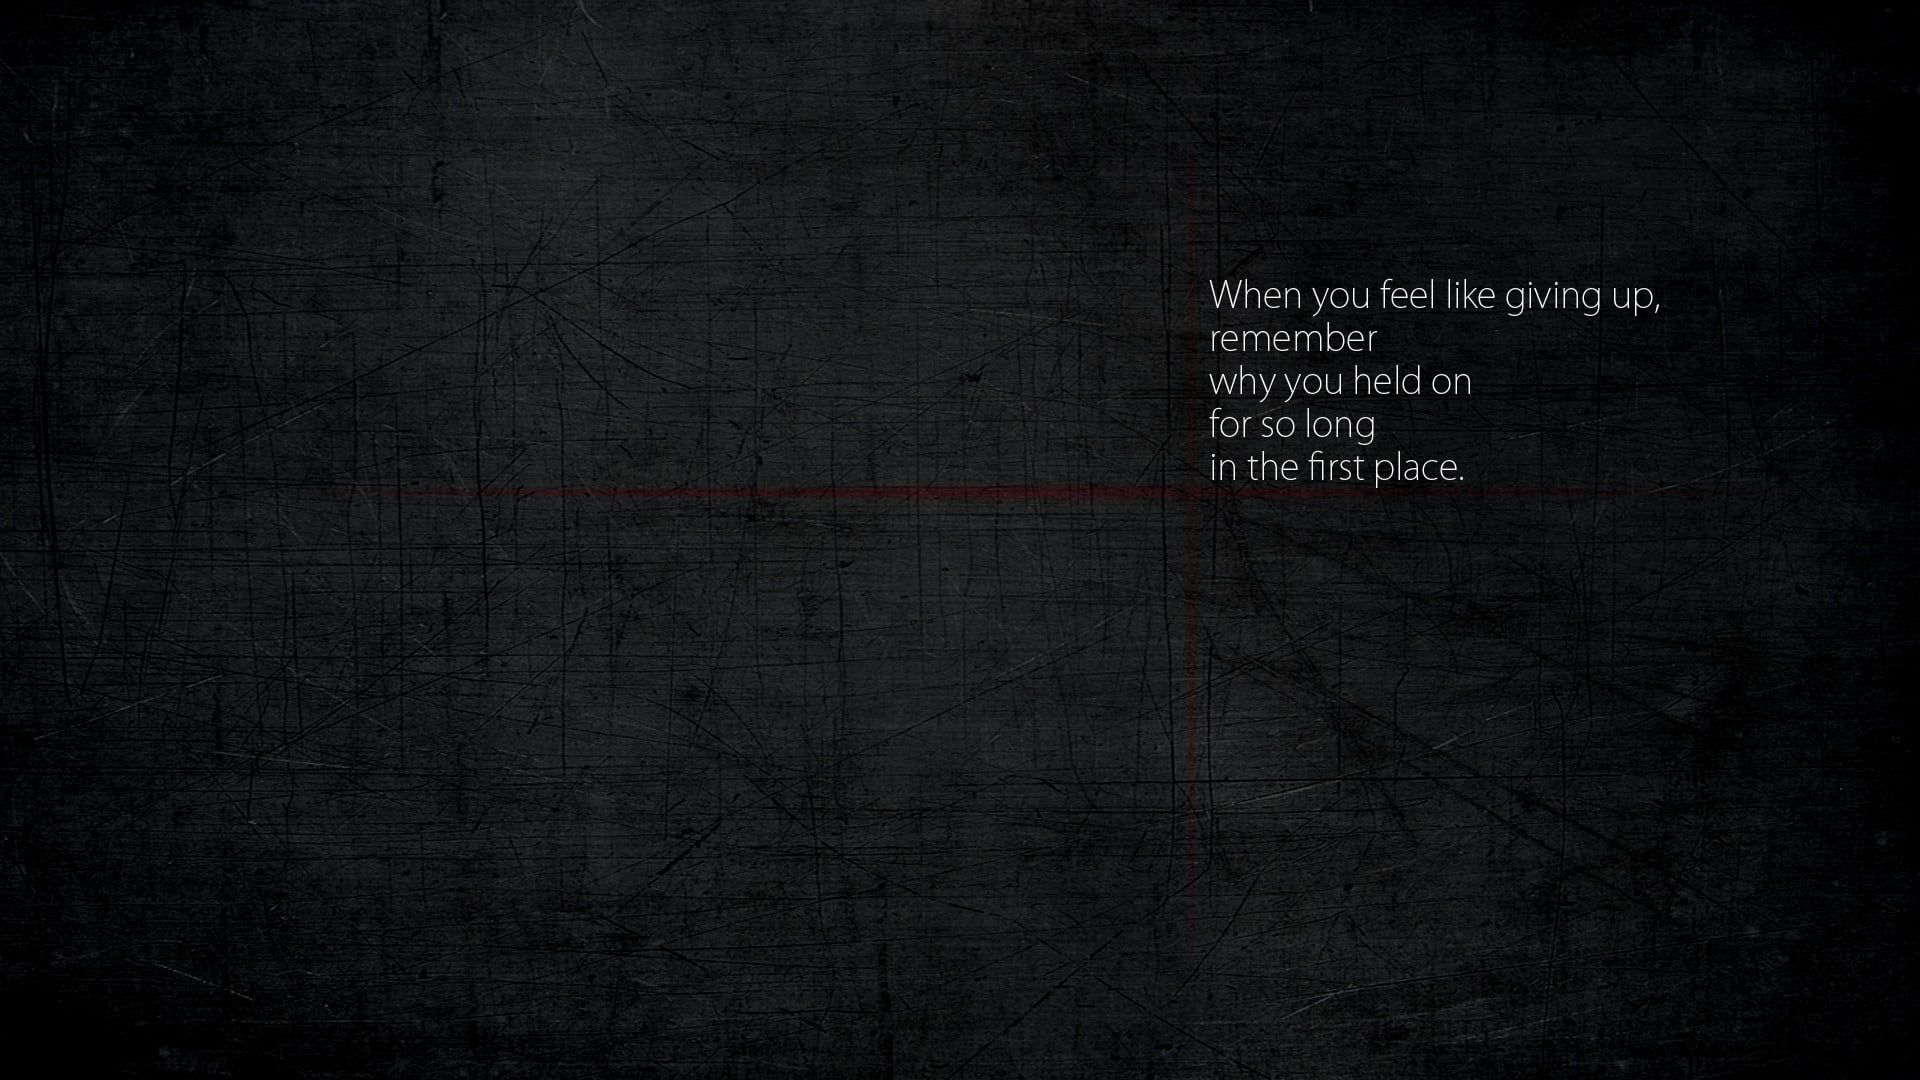 White Text With Black Background When You Feel Like Giving Up Remember Why You Held On For So Giving Up Quotes Feel Like Giving Up Some Inspirational Quotes